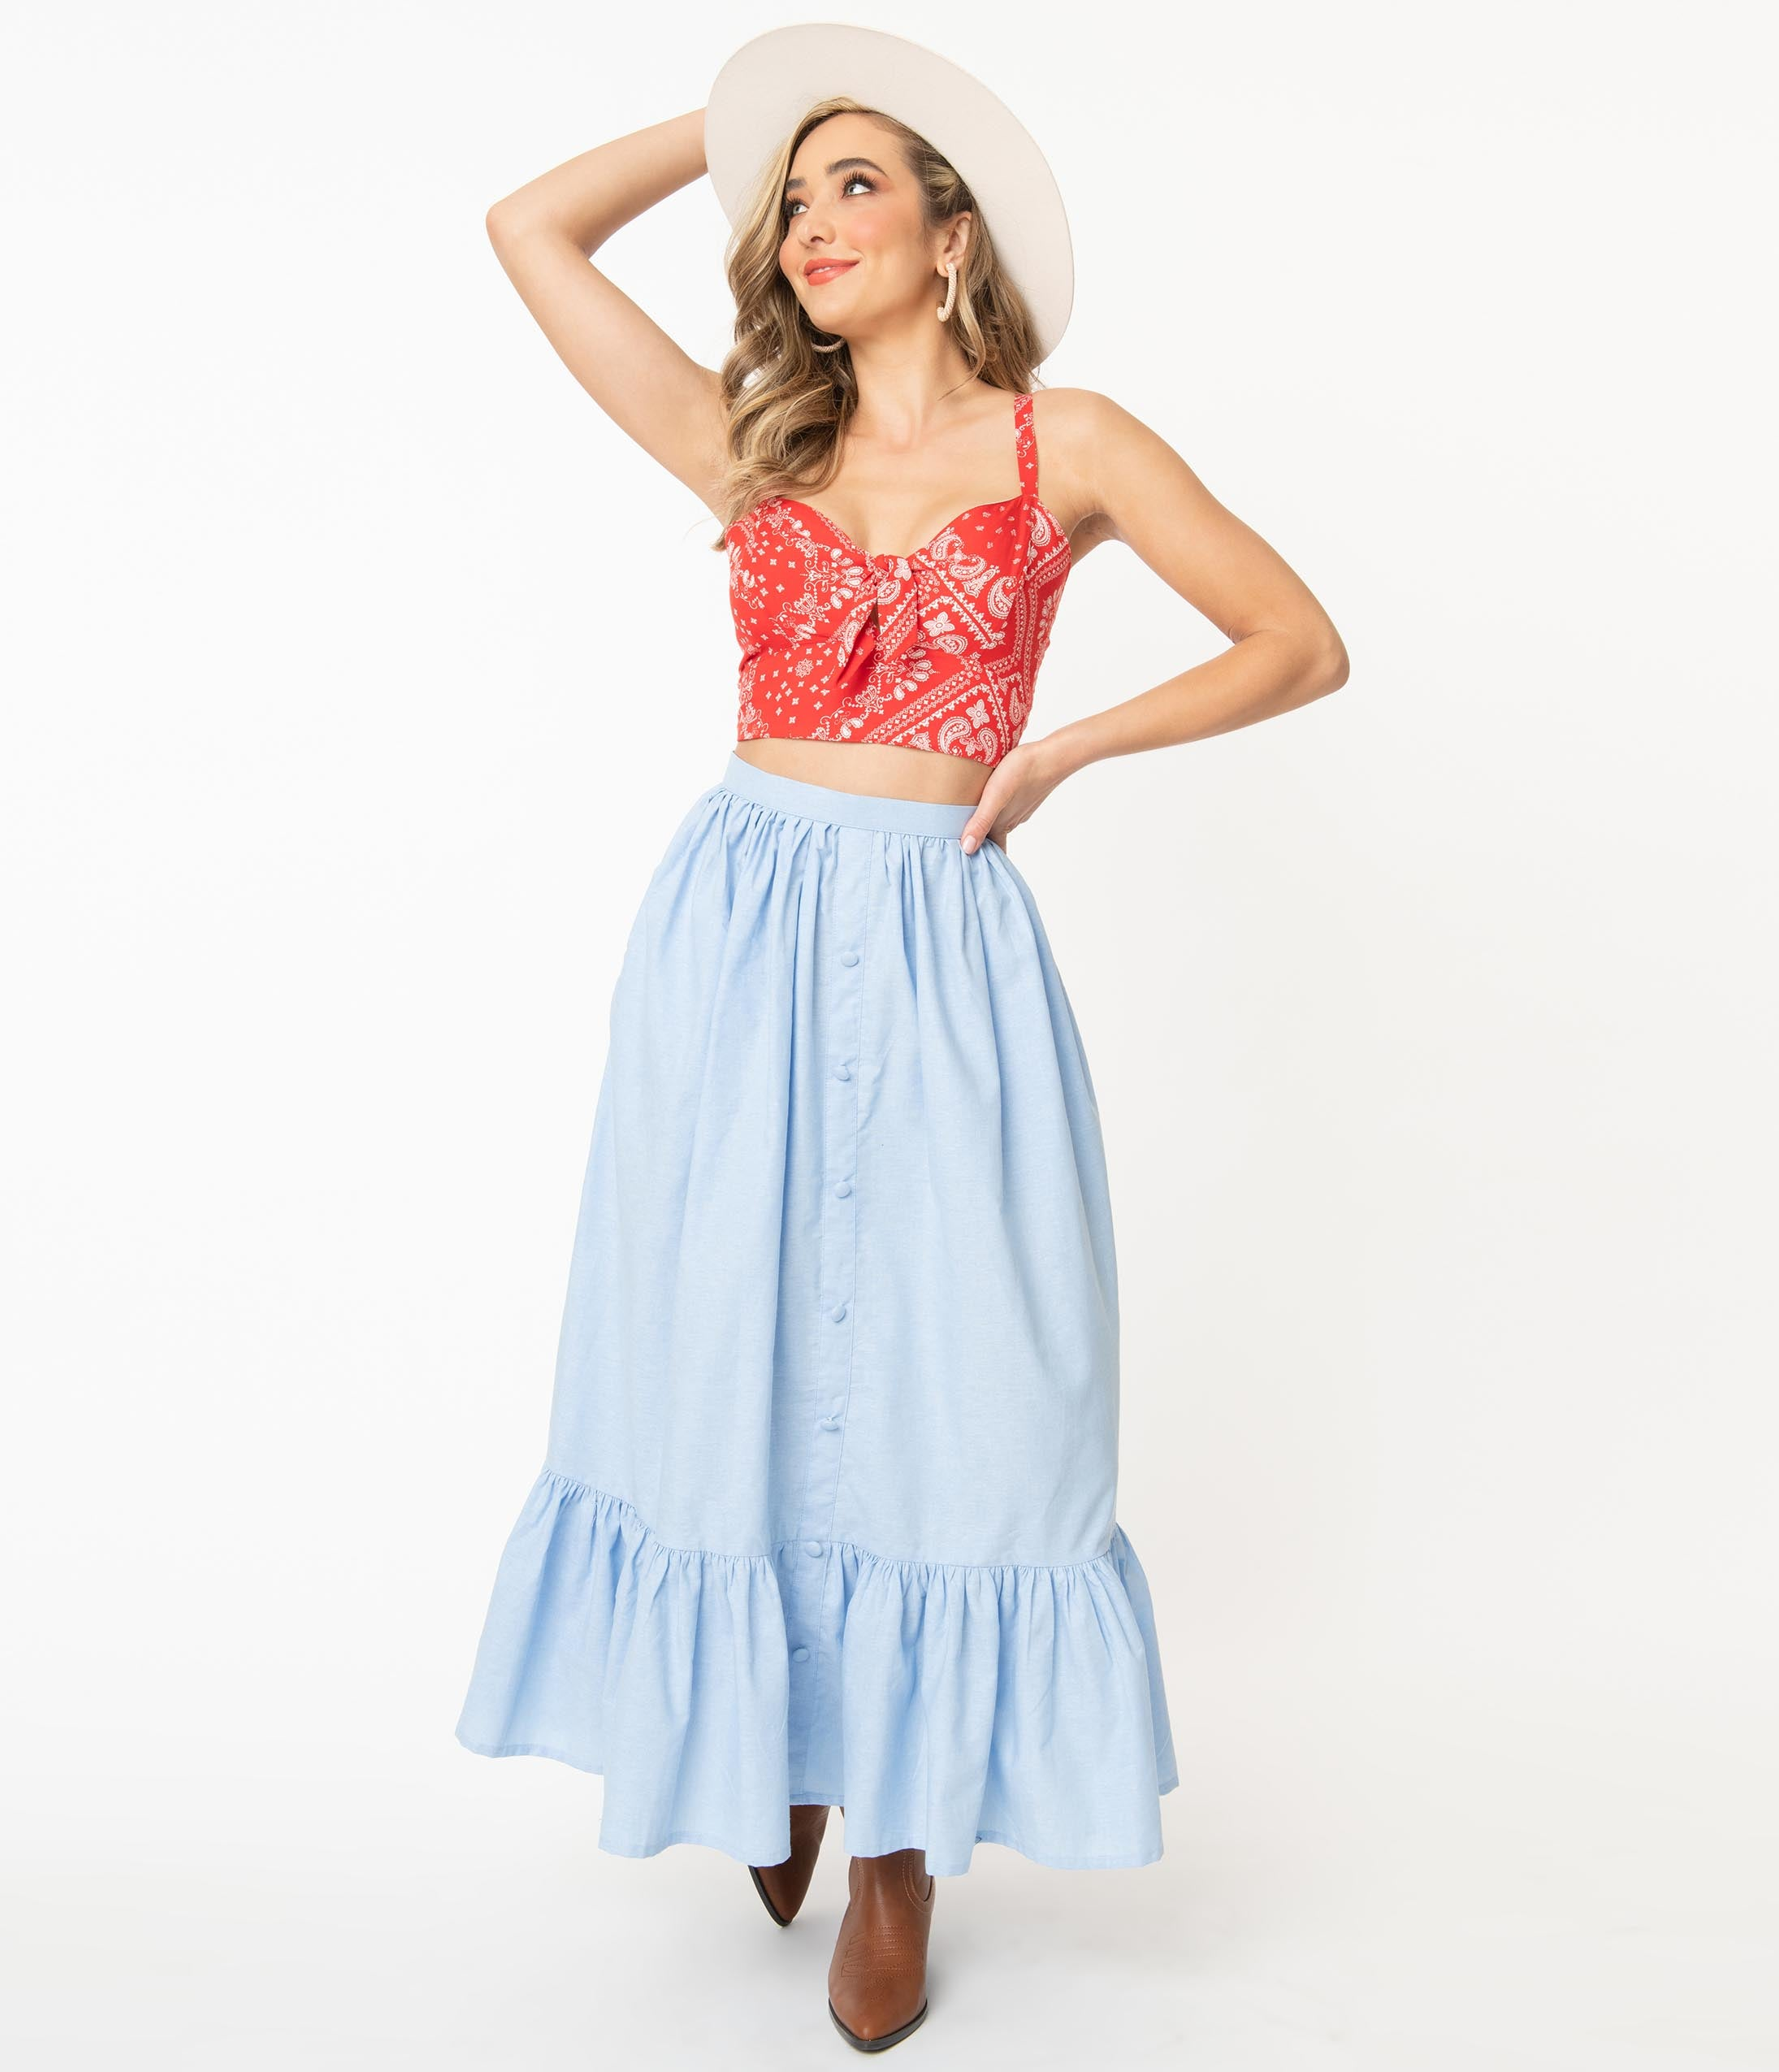 Vintage Skirts | Retro, Pencil, Swing, Boho Magnolia Place Western Style Chambray Maxi Skirt $58.00 AT vintagedancer.com